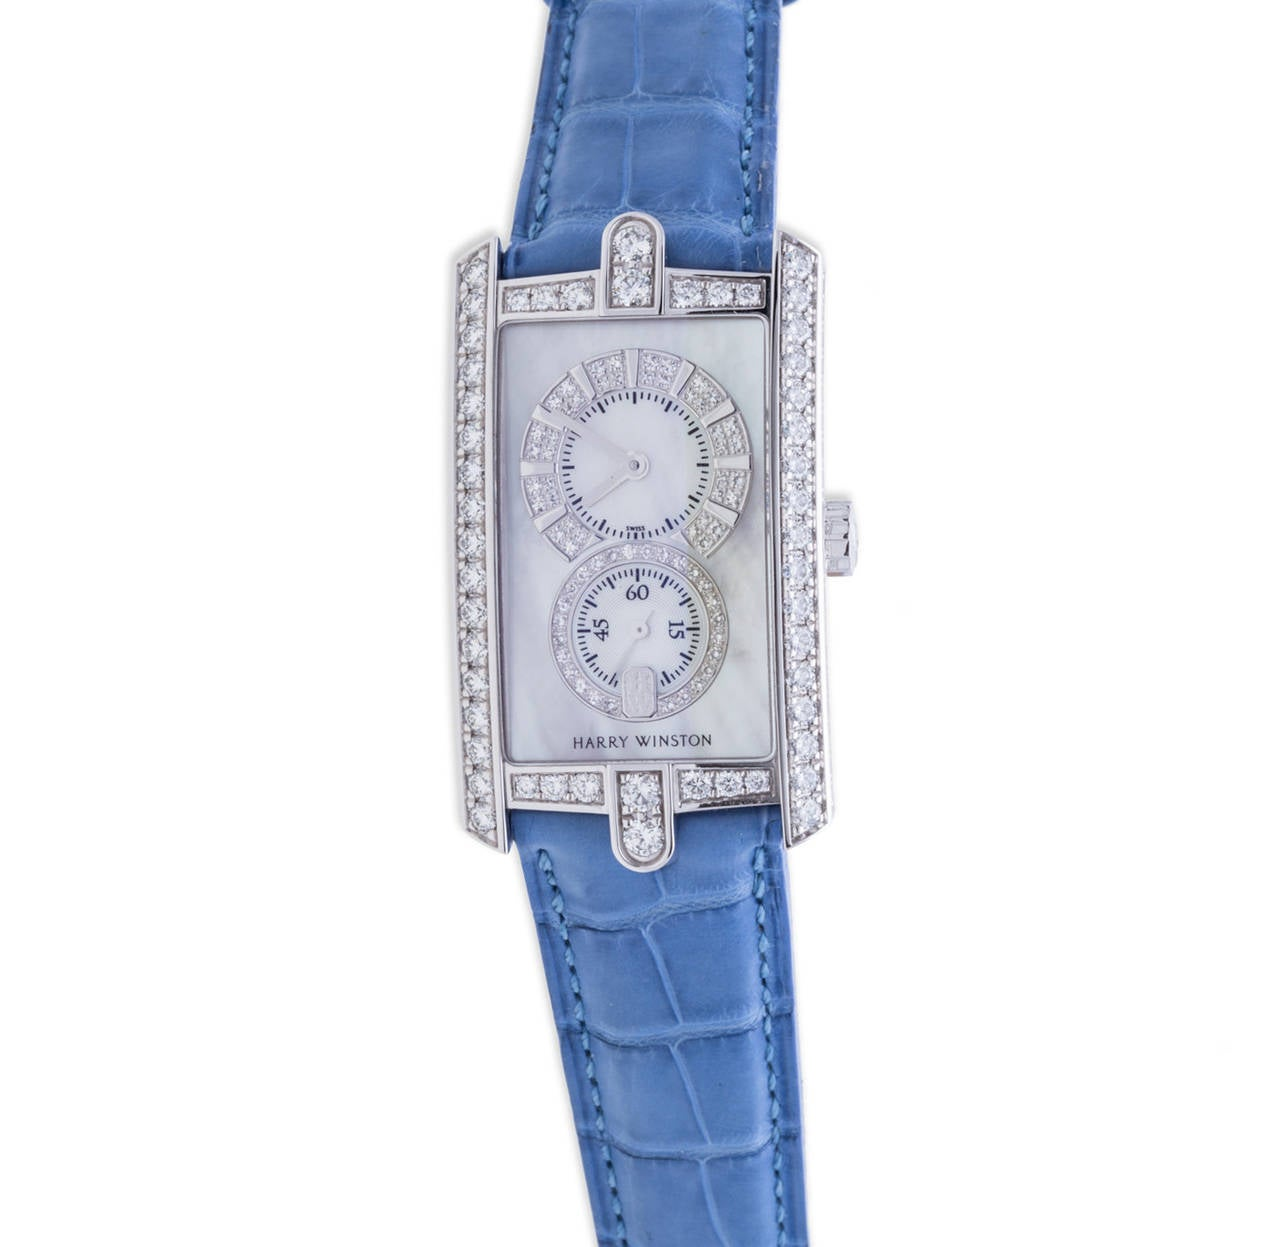 Harry Winston Avenue C Diamond Ladies Watch in 18K White Gold, 18K White Gold Diamond Case 26mm x 46.1mm, White Mother of Pearl Dial with Diamond , Quartz Moevement, Brand New with Box & Papers.